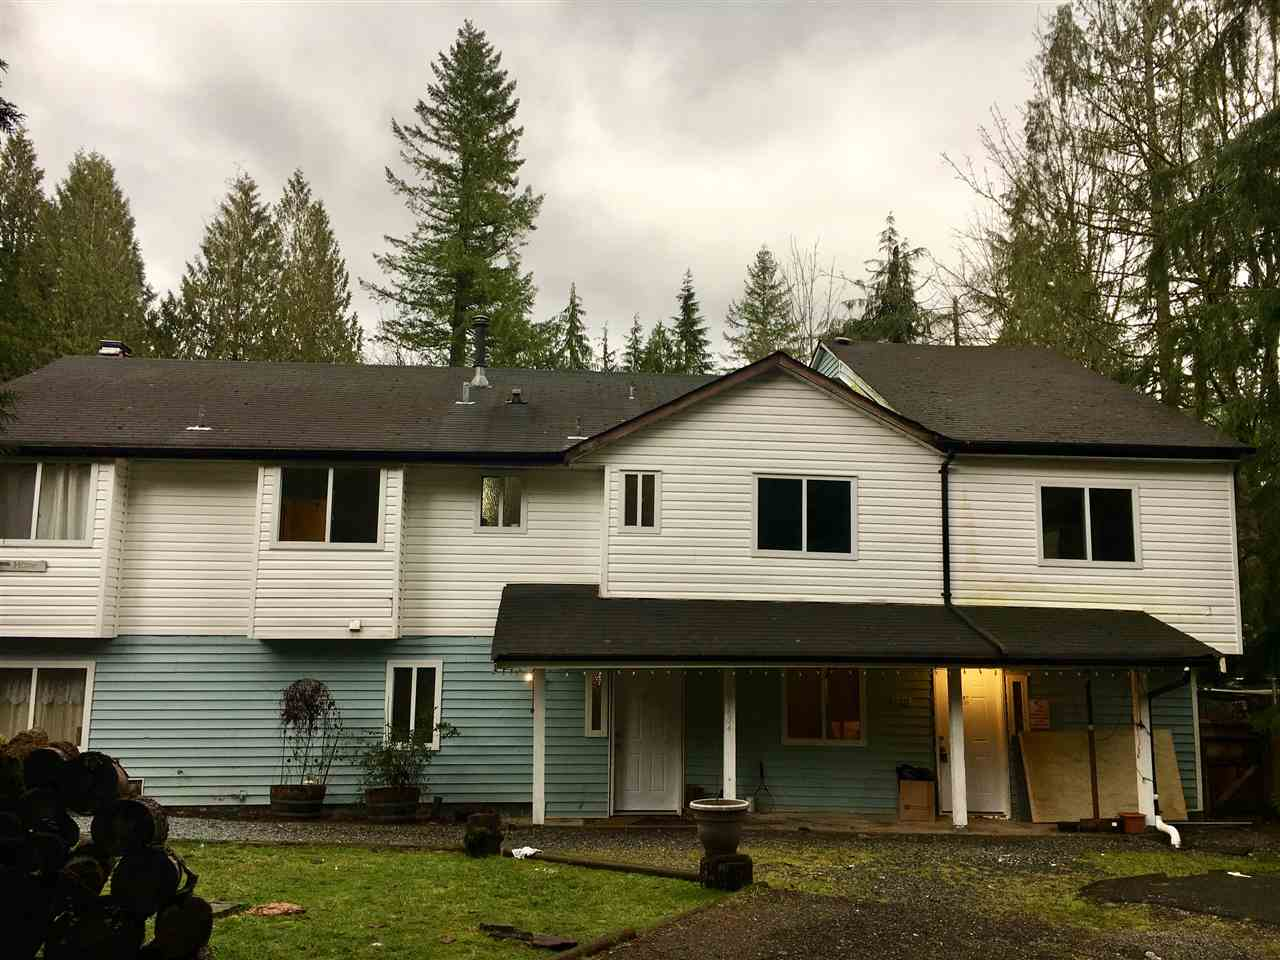 Large Stave Falls home between Maple Ridge and Mission on good sized .3 acre lot. Drilled well. Needs renovation. Being sold as it. Opportunity here.